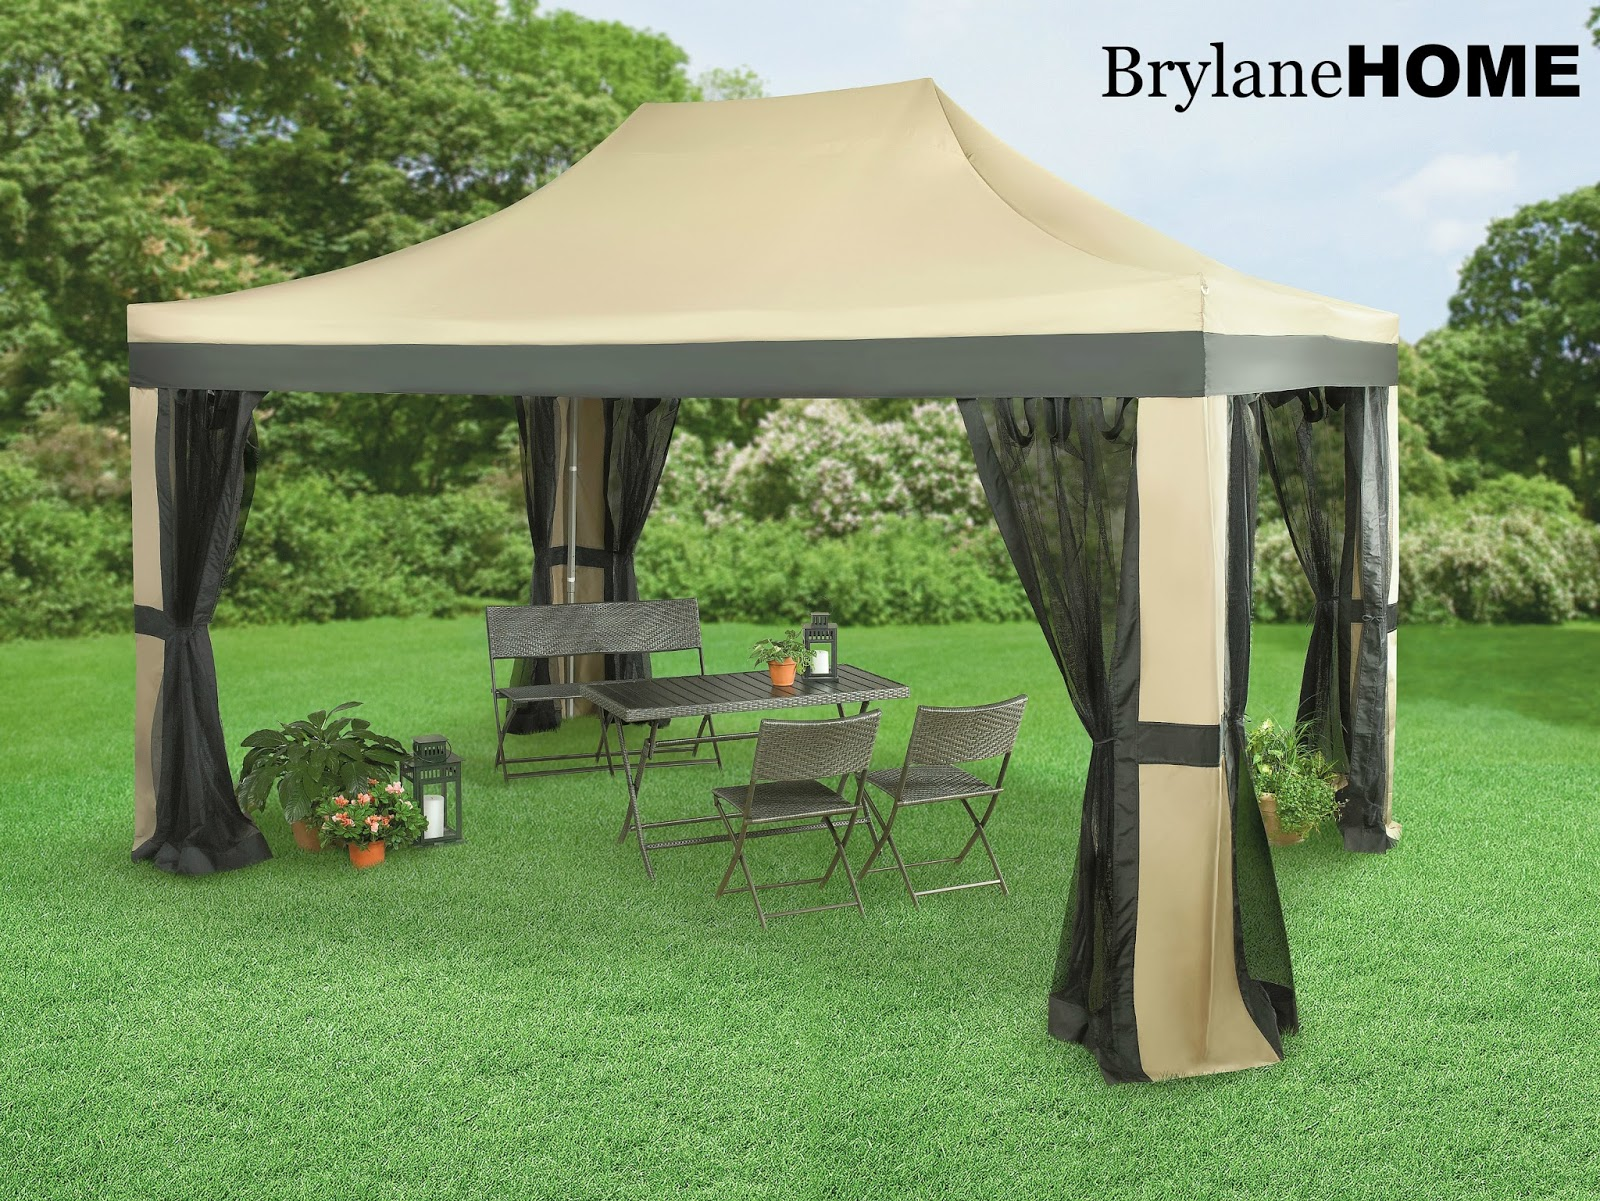 The Oversized 10 X 15 Instant Pop Up Gazebo With Screen Allows You To Enjoy Outdoors Protection From Sun And Bugs